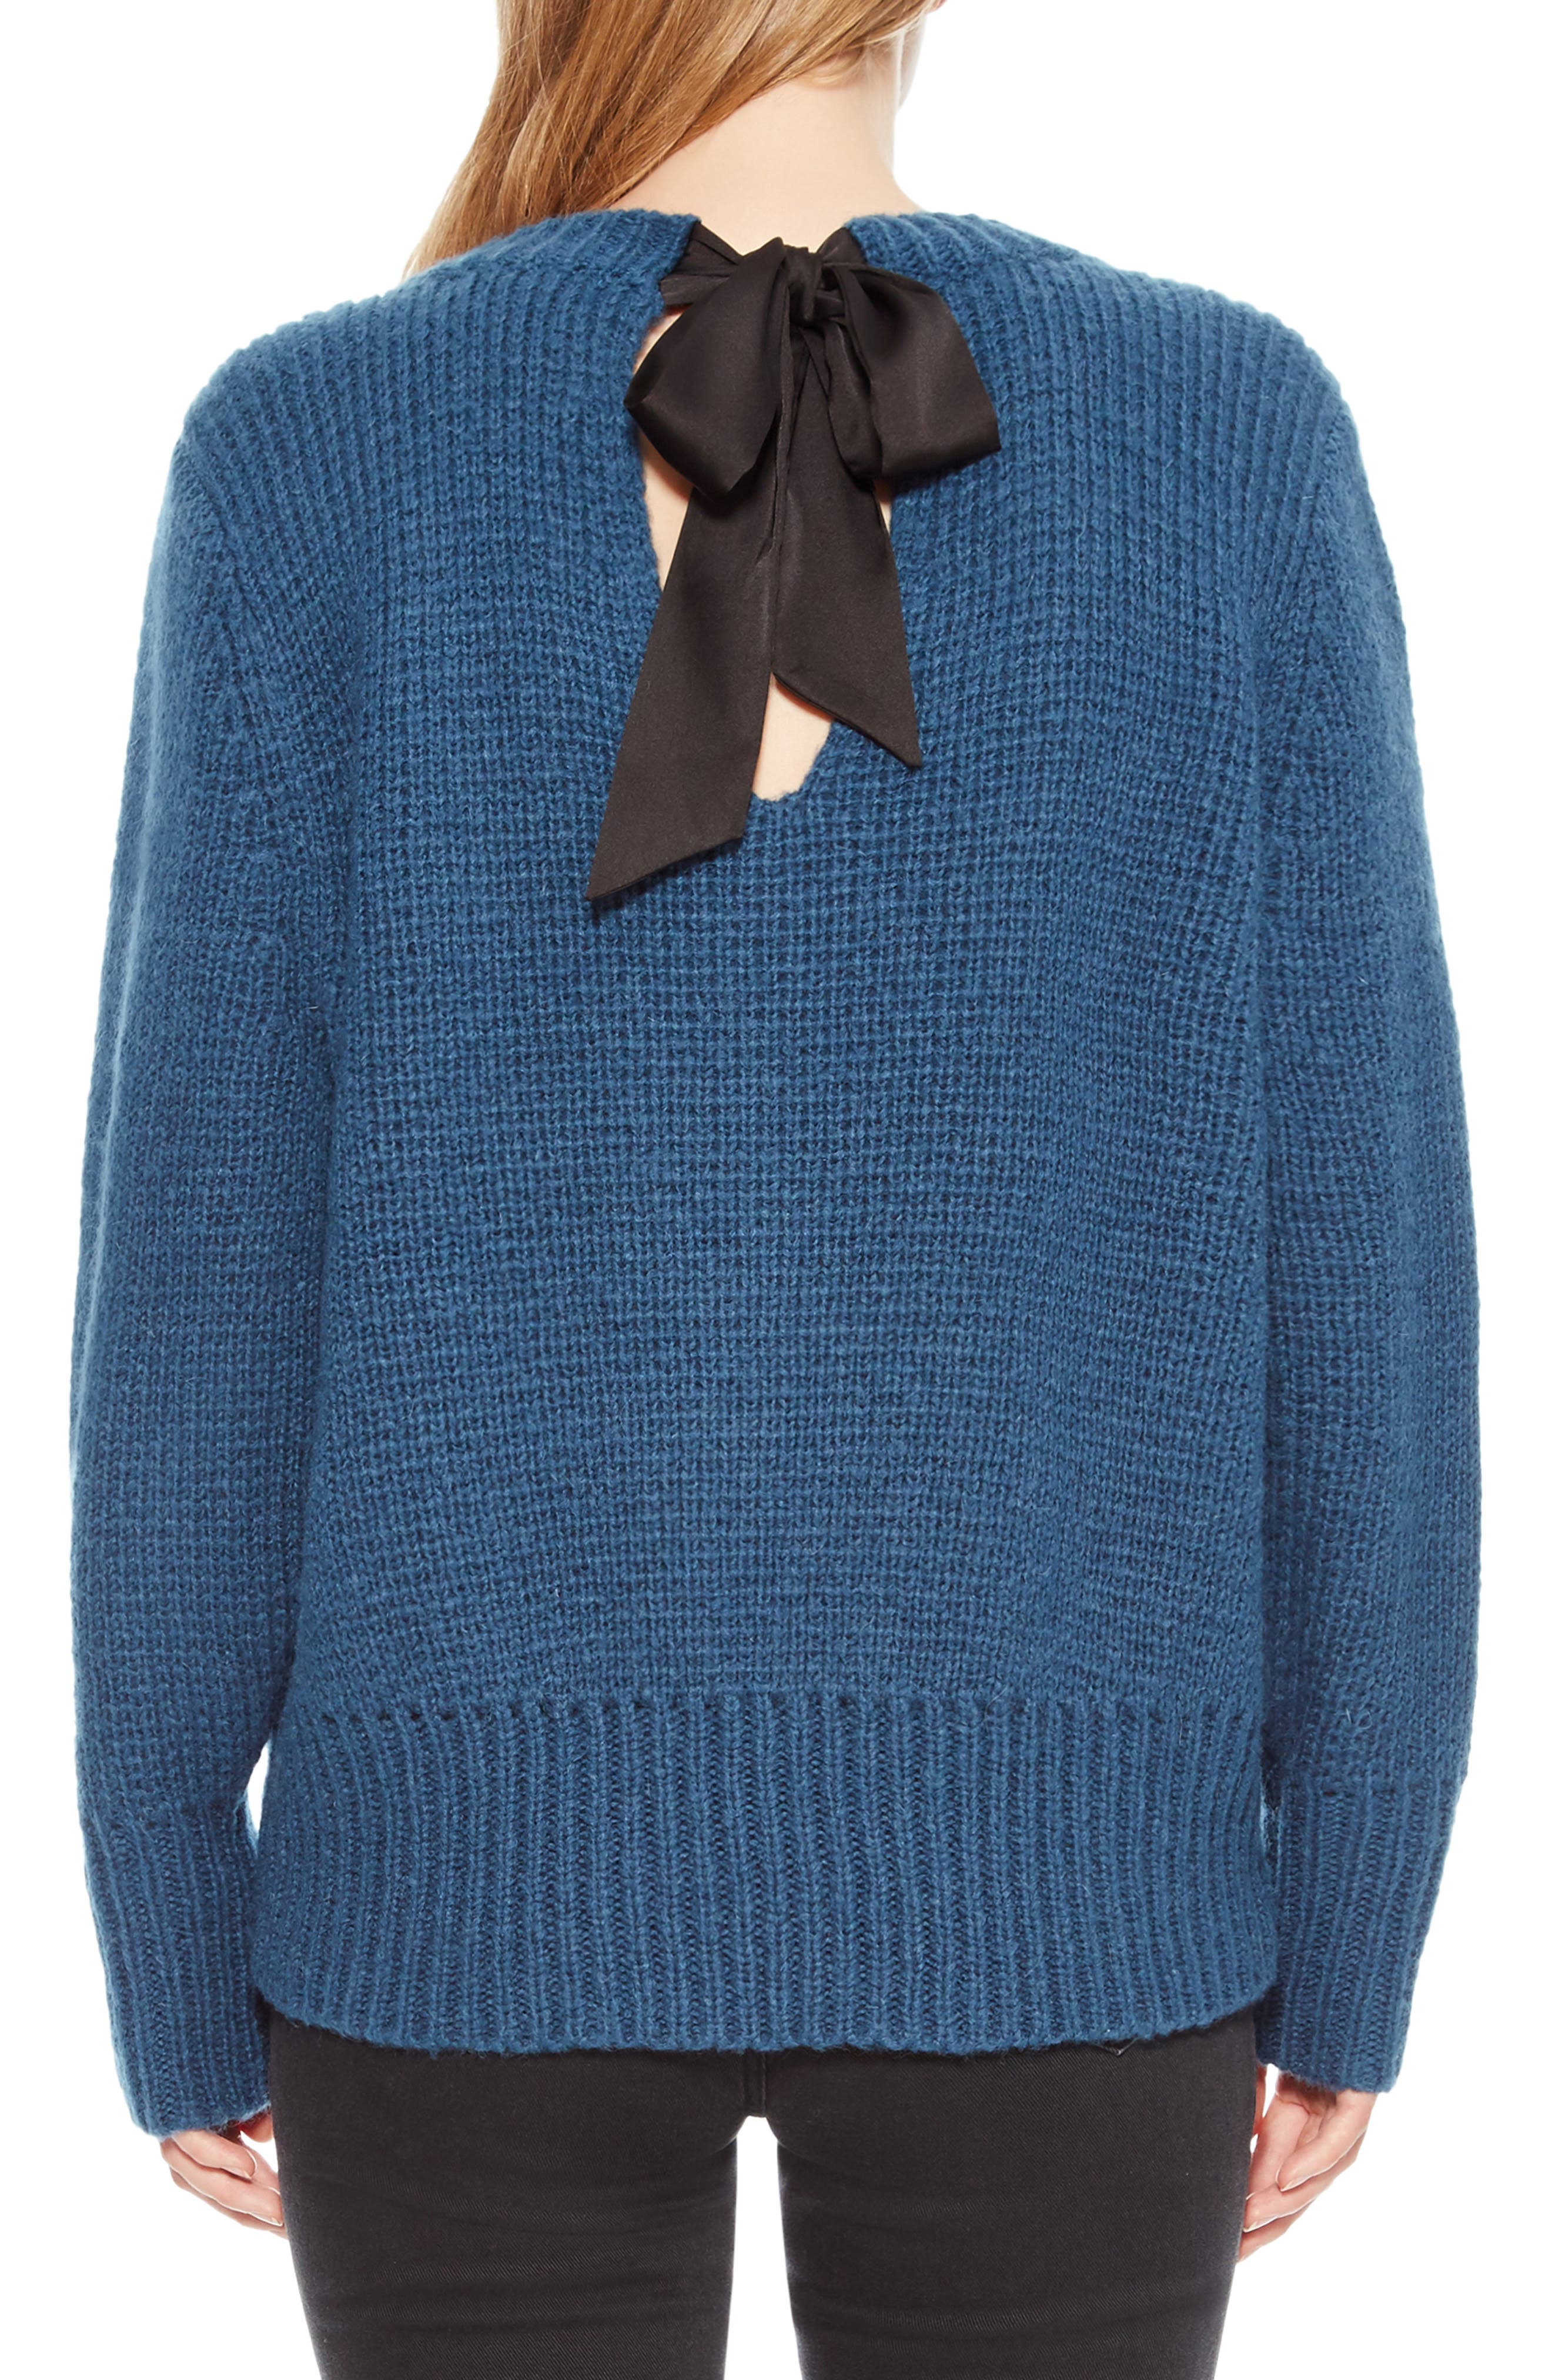 Matty Bow Back Sweater,                             Alternate thumbnail 2, color,                             449